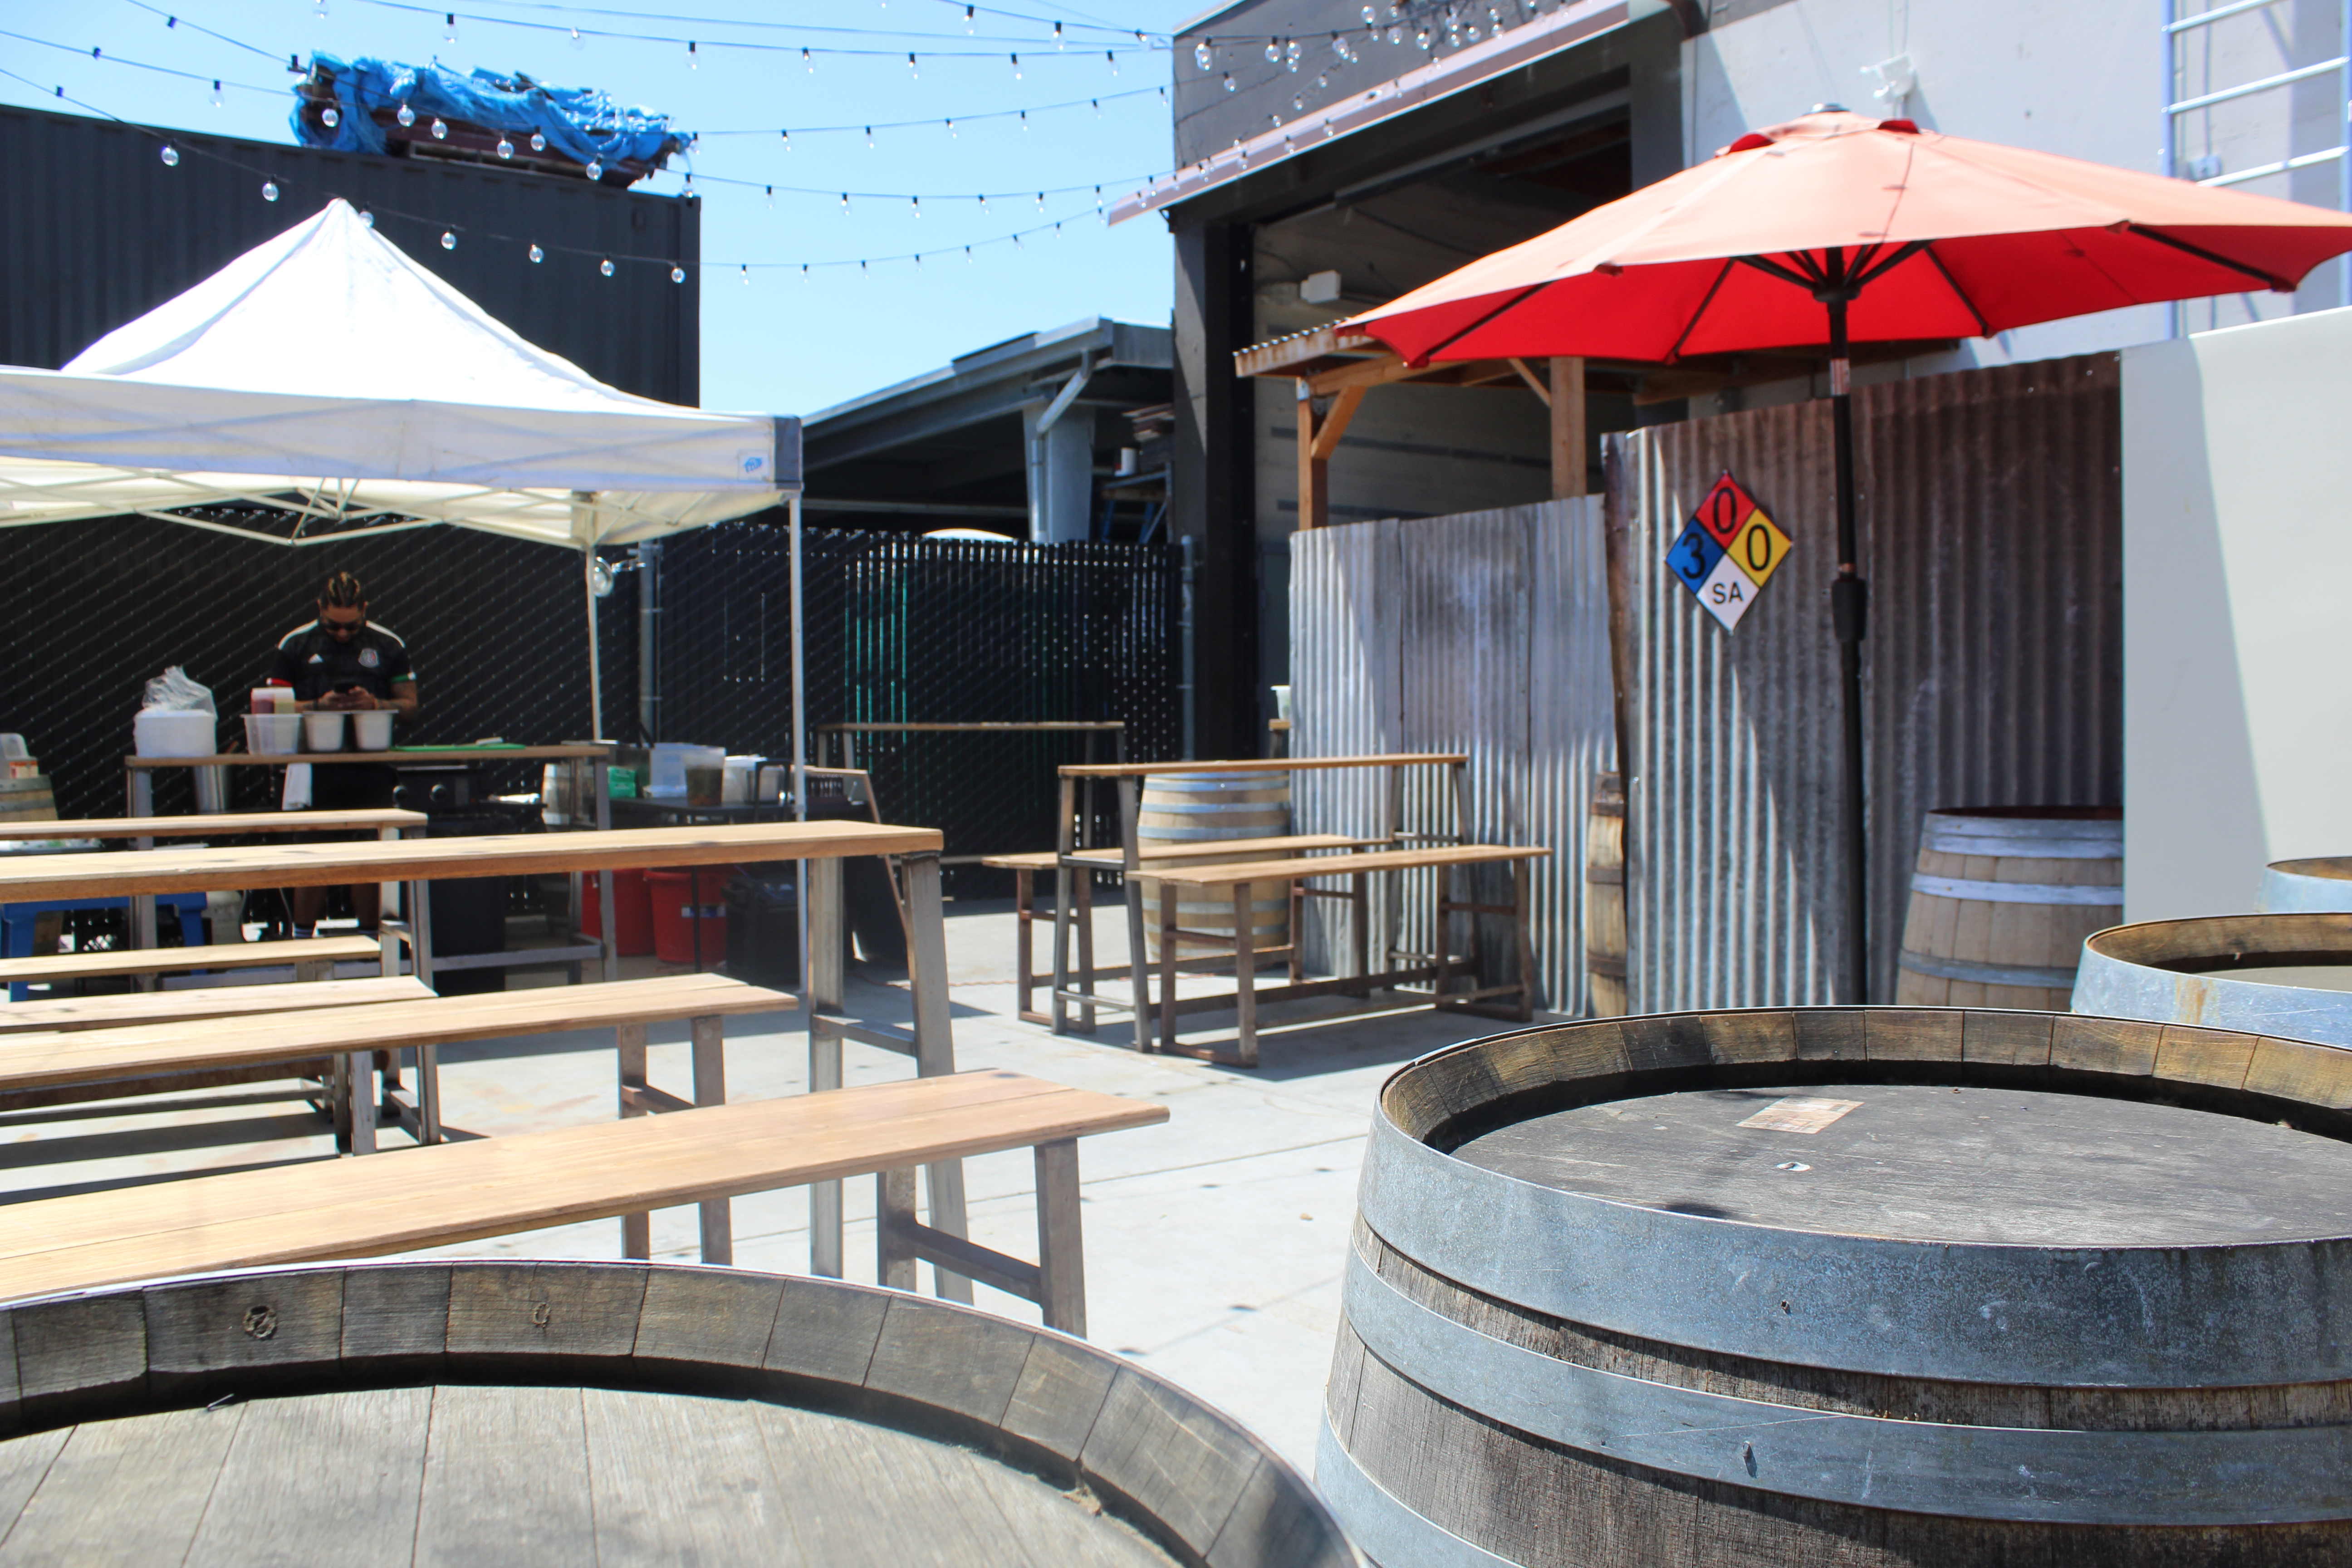 Photo #11 Indoor/Outdoor Patio Space at Camino Brewing Co.